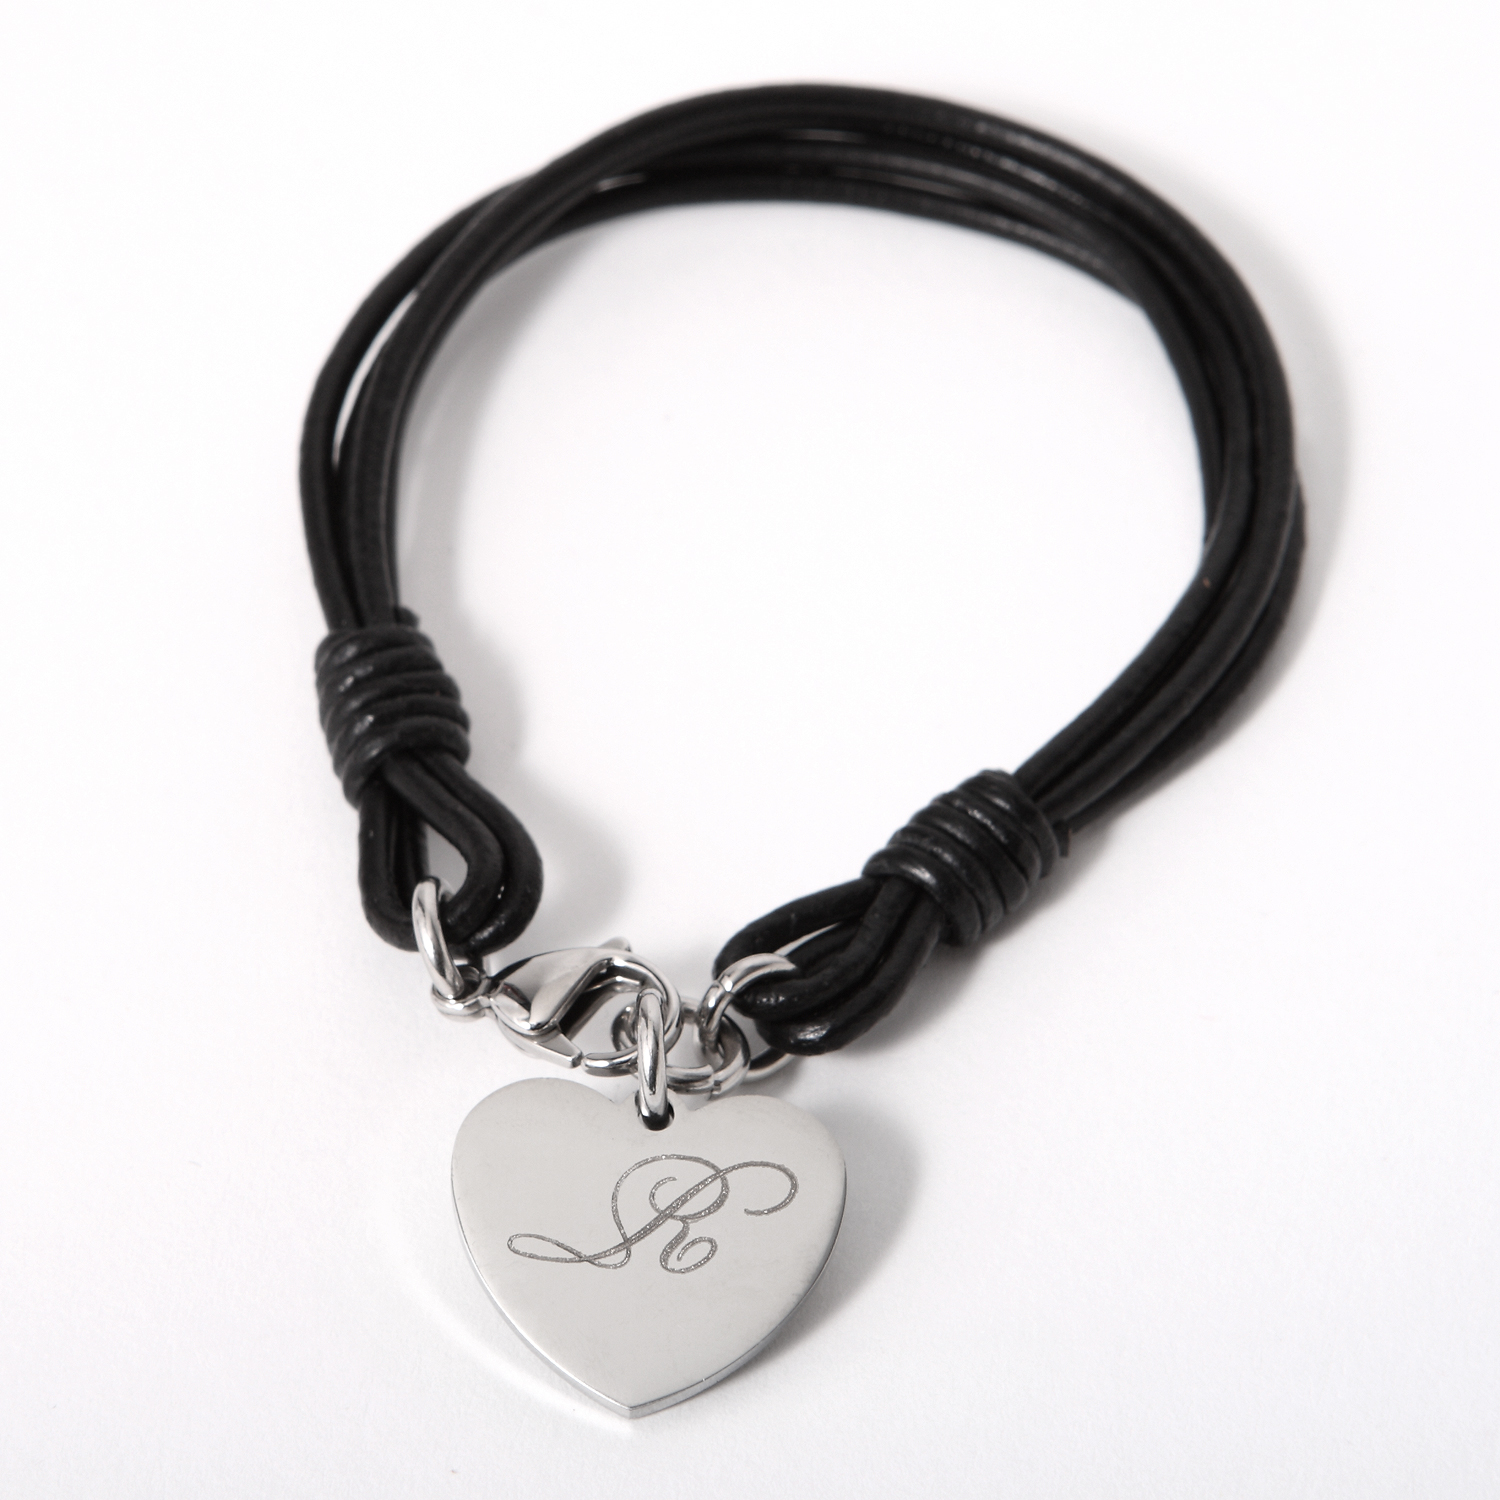 Personalized Bracelet Charms: Personalized Leather Bracelet With Stainless Steel Key And